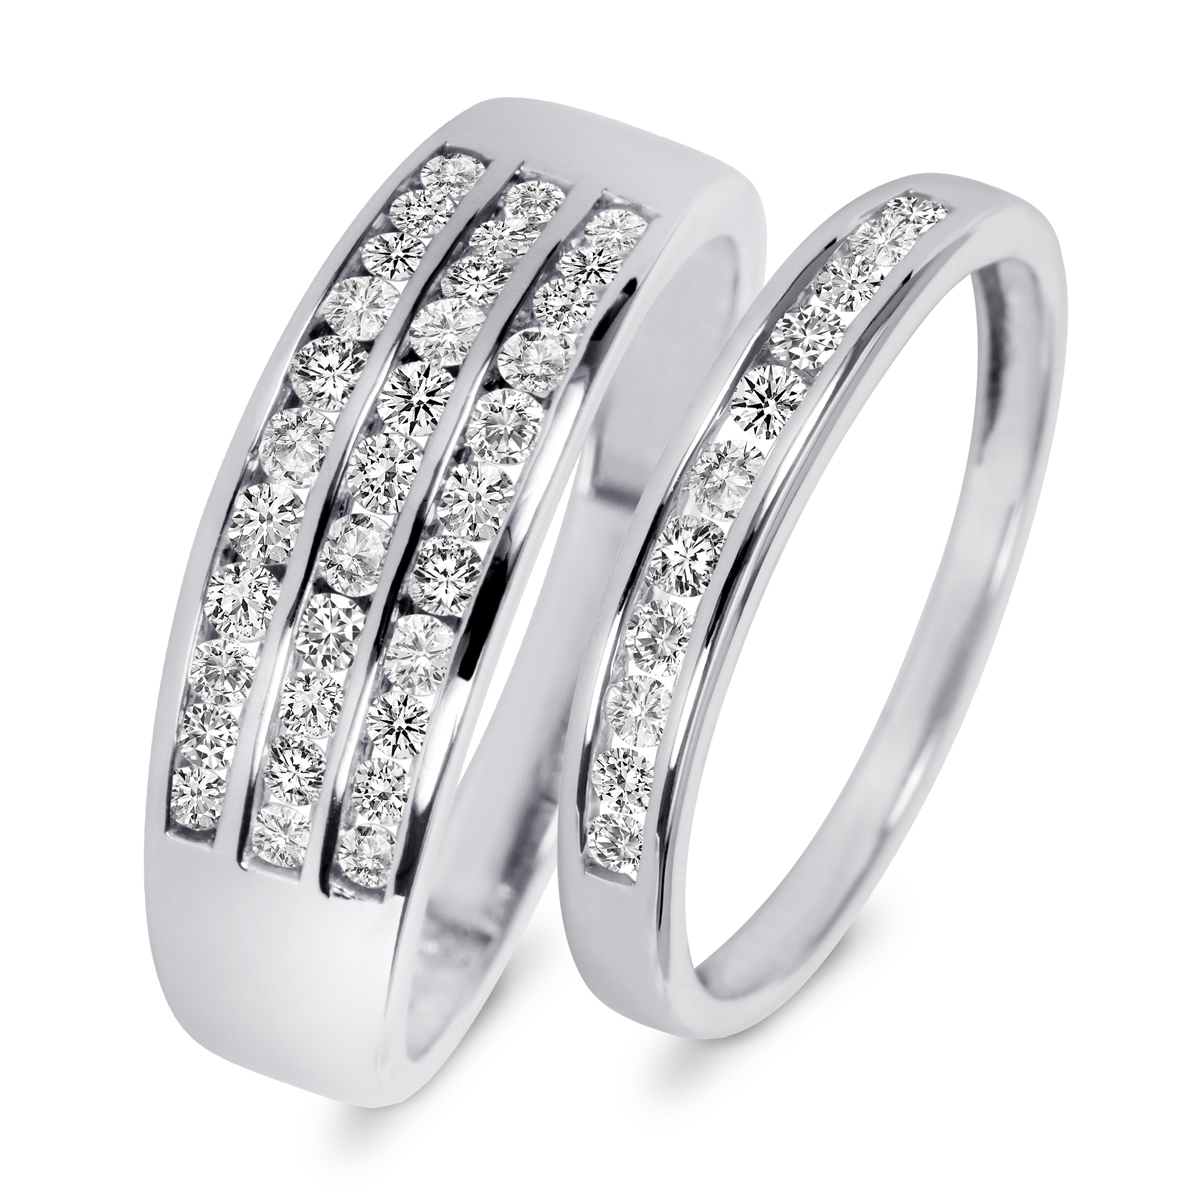 7/8 Carat T.w. Diamond His And Hers Wedding Rings 14K White Gold In Latest His And Her Wedding Bands Sets (Gallery 8 of 15)